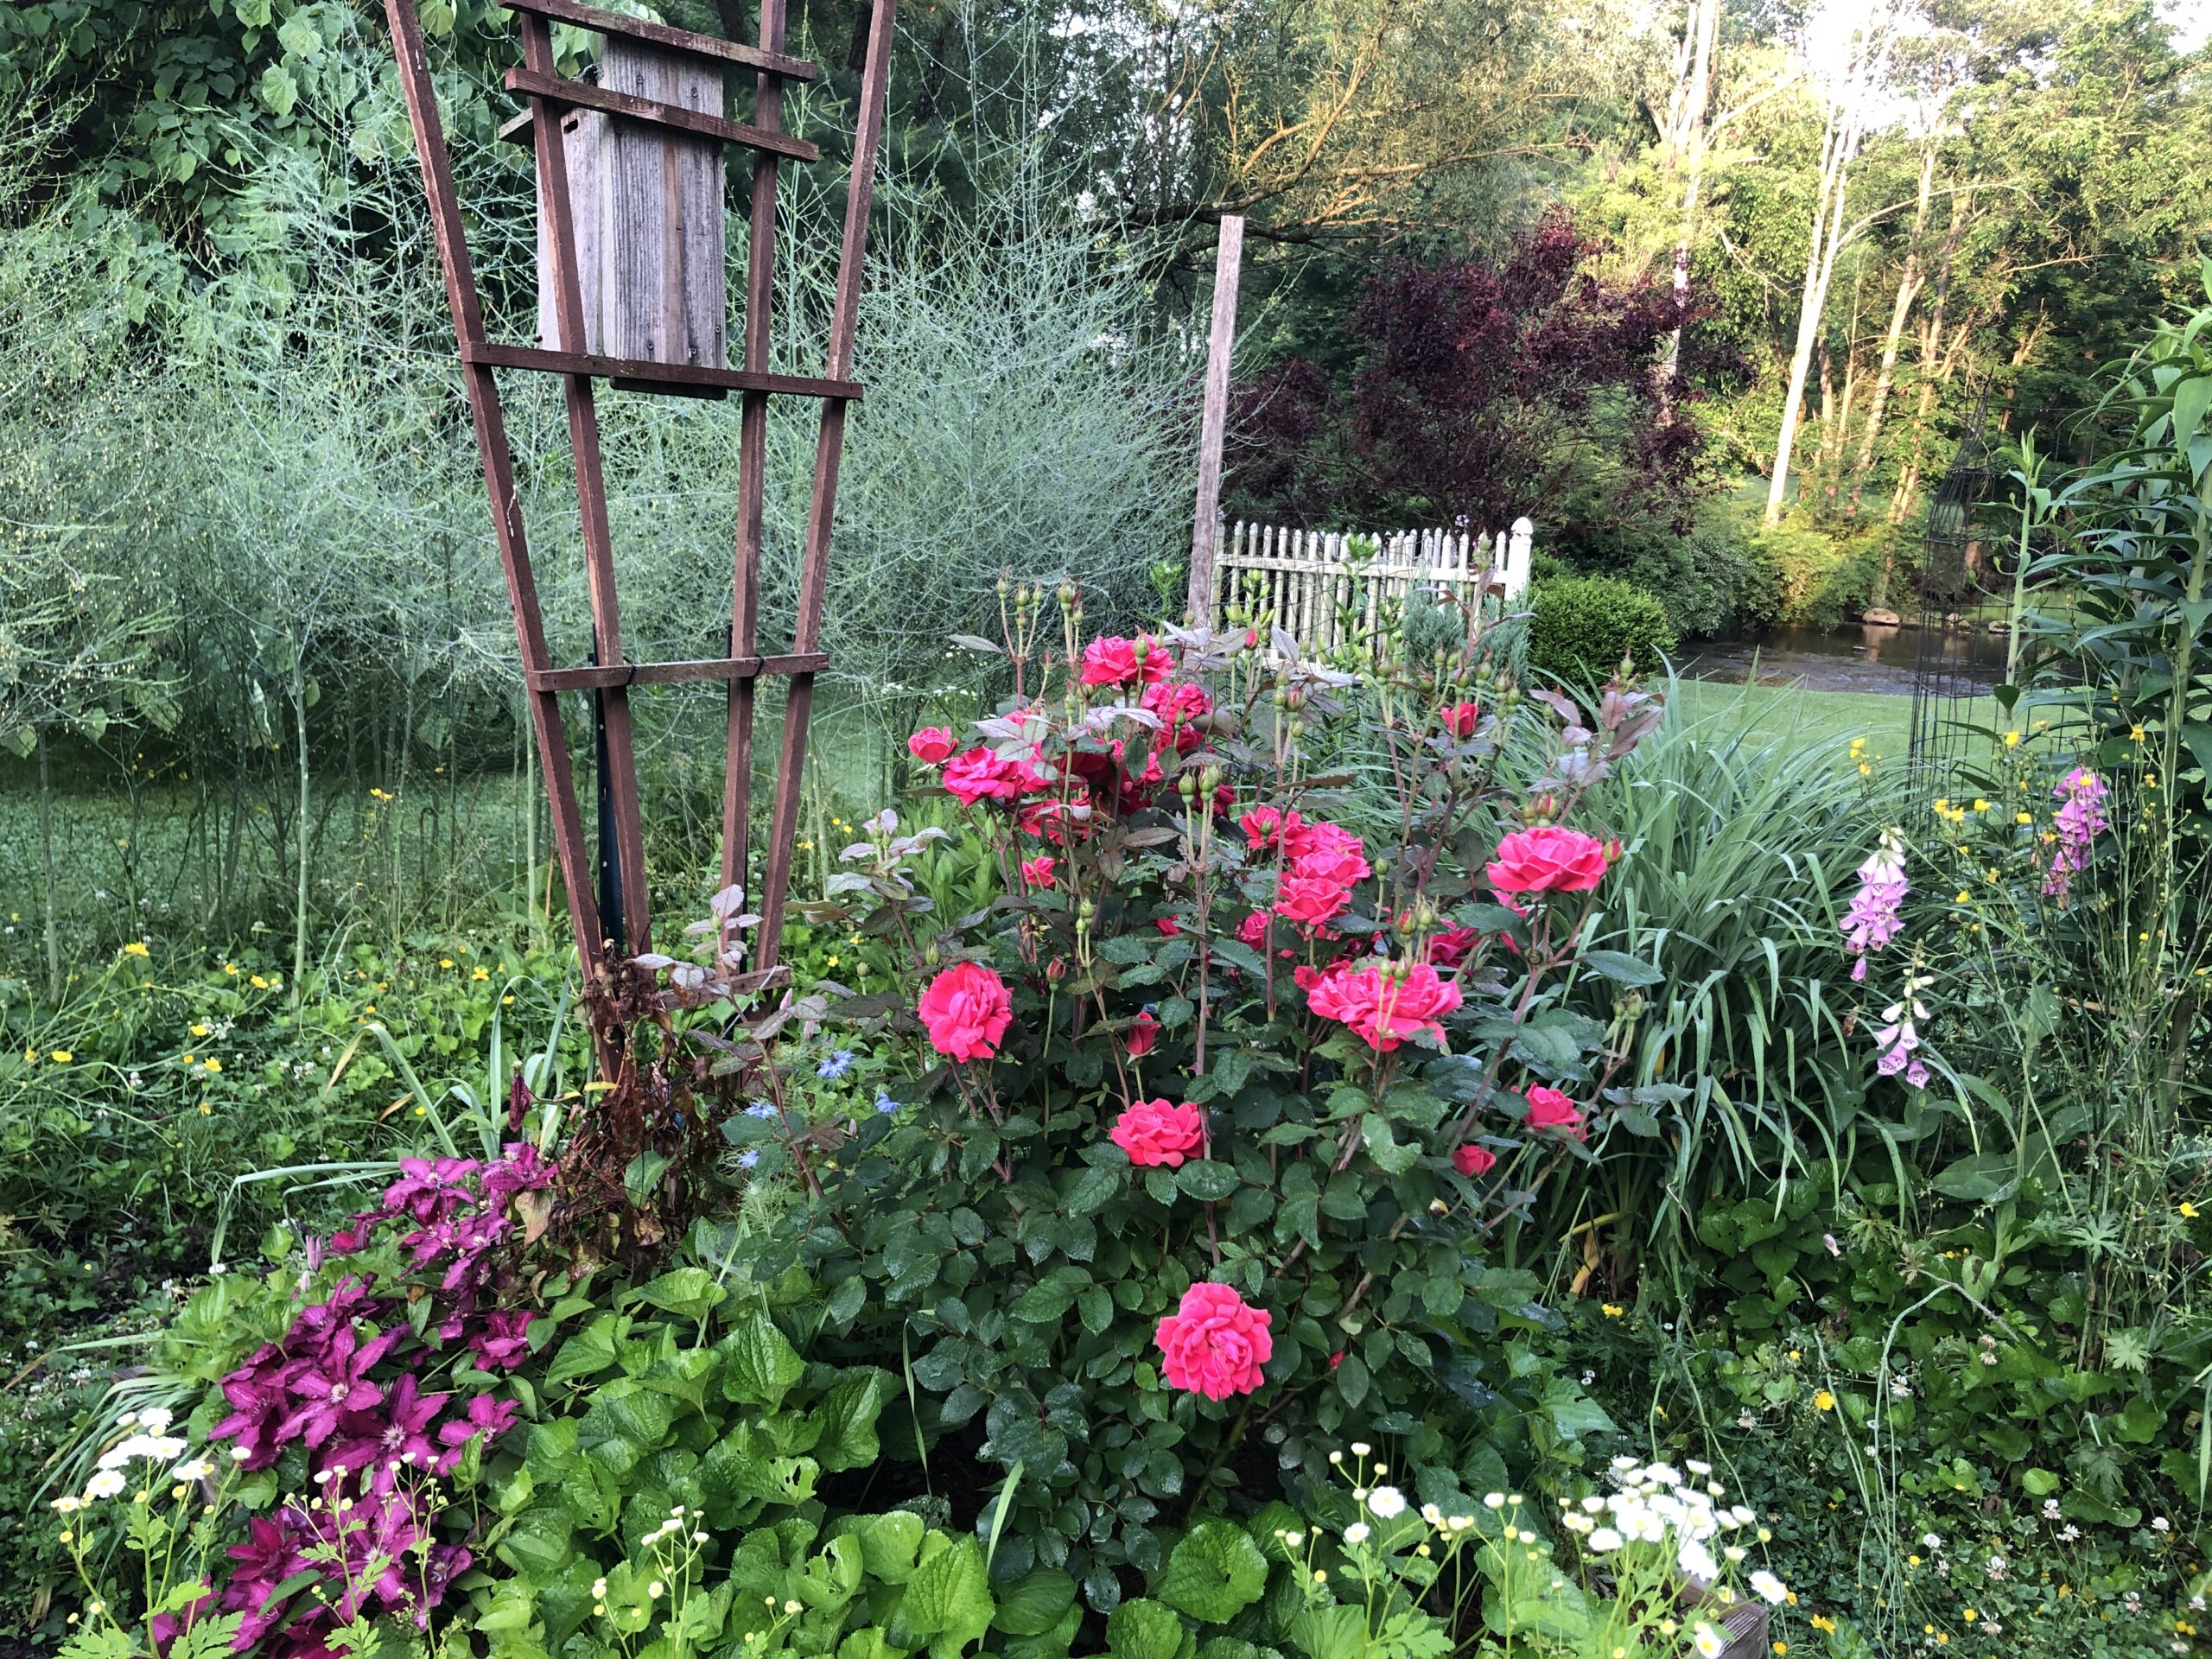 bright pink rose growing in front of a trellis